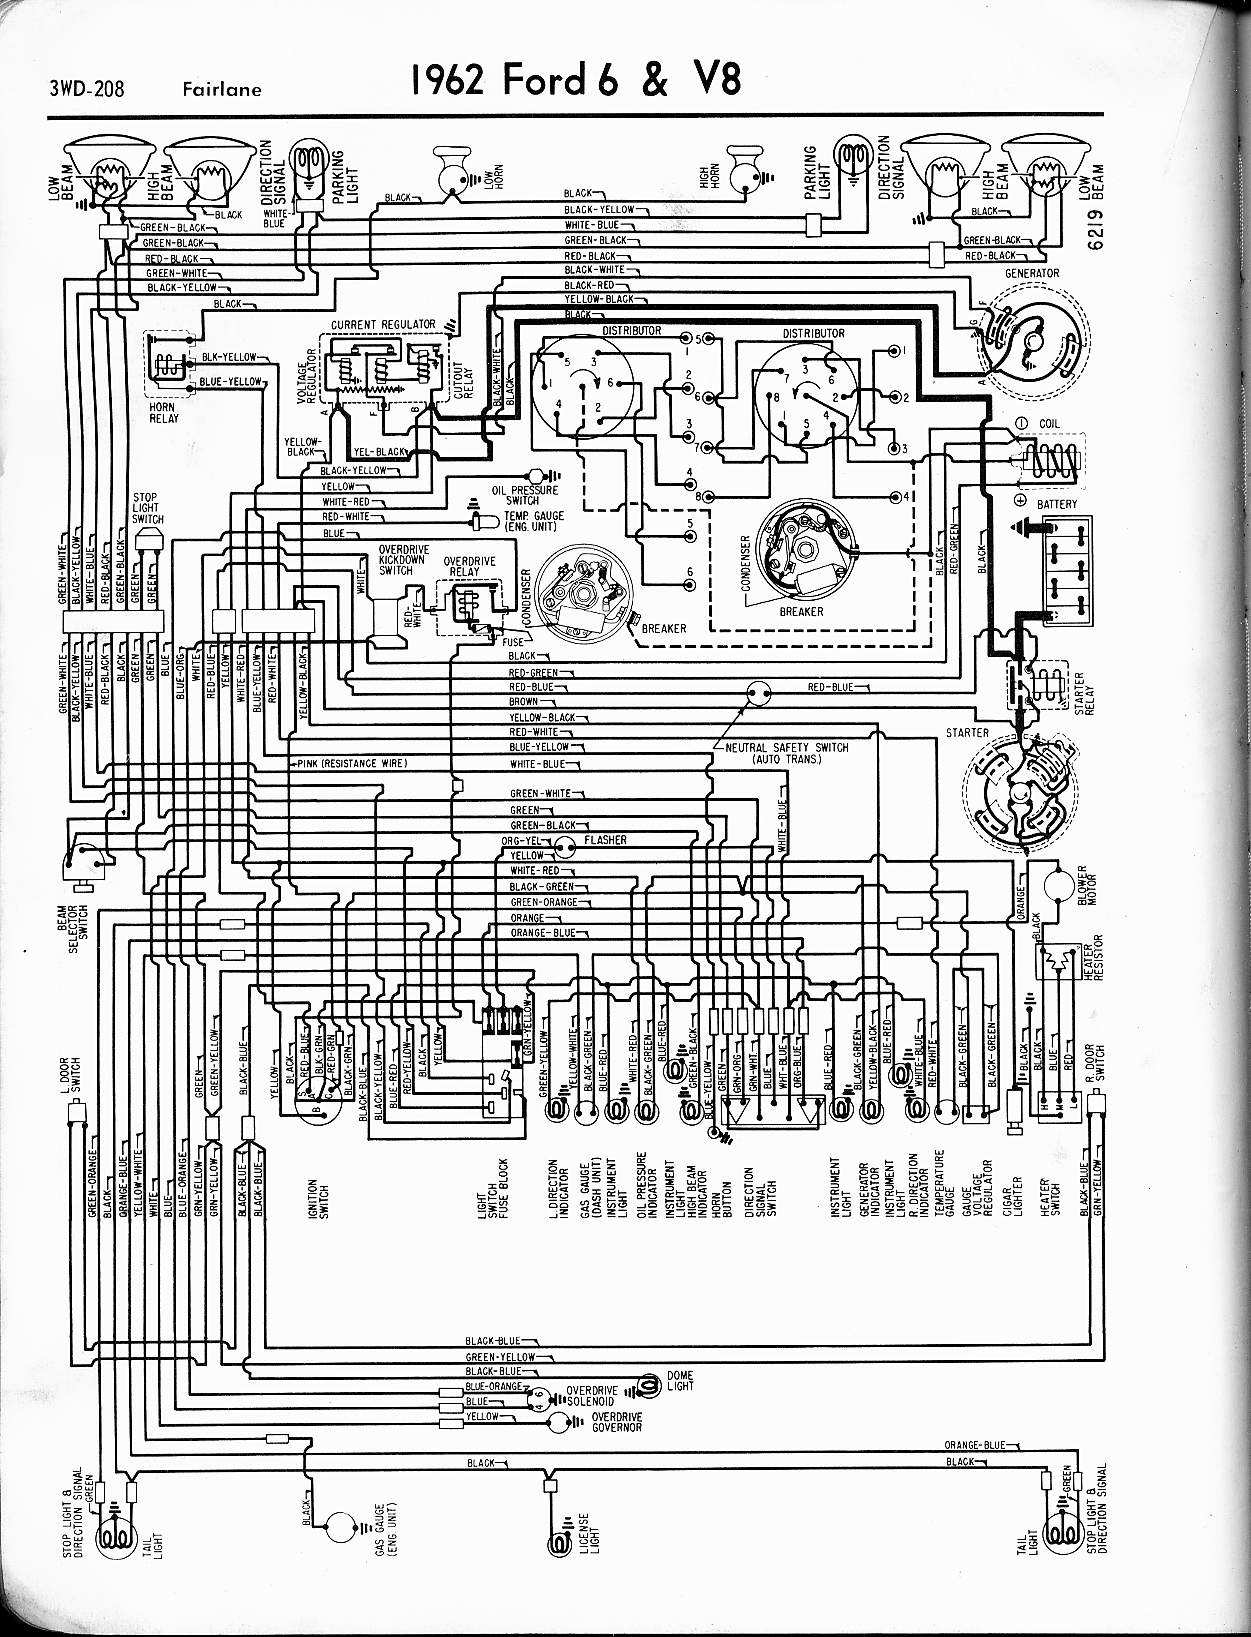 1962 ford wiring diagram wiring diagram library 1968 Ford Thunderbird 1962 ford wiring diagram